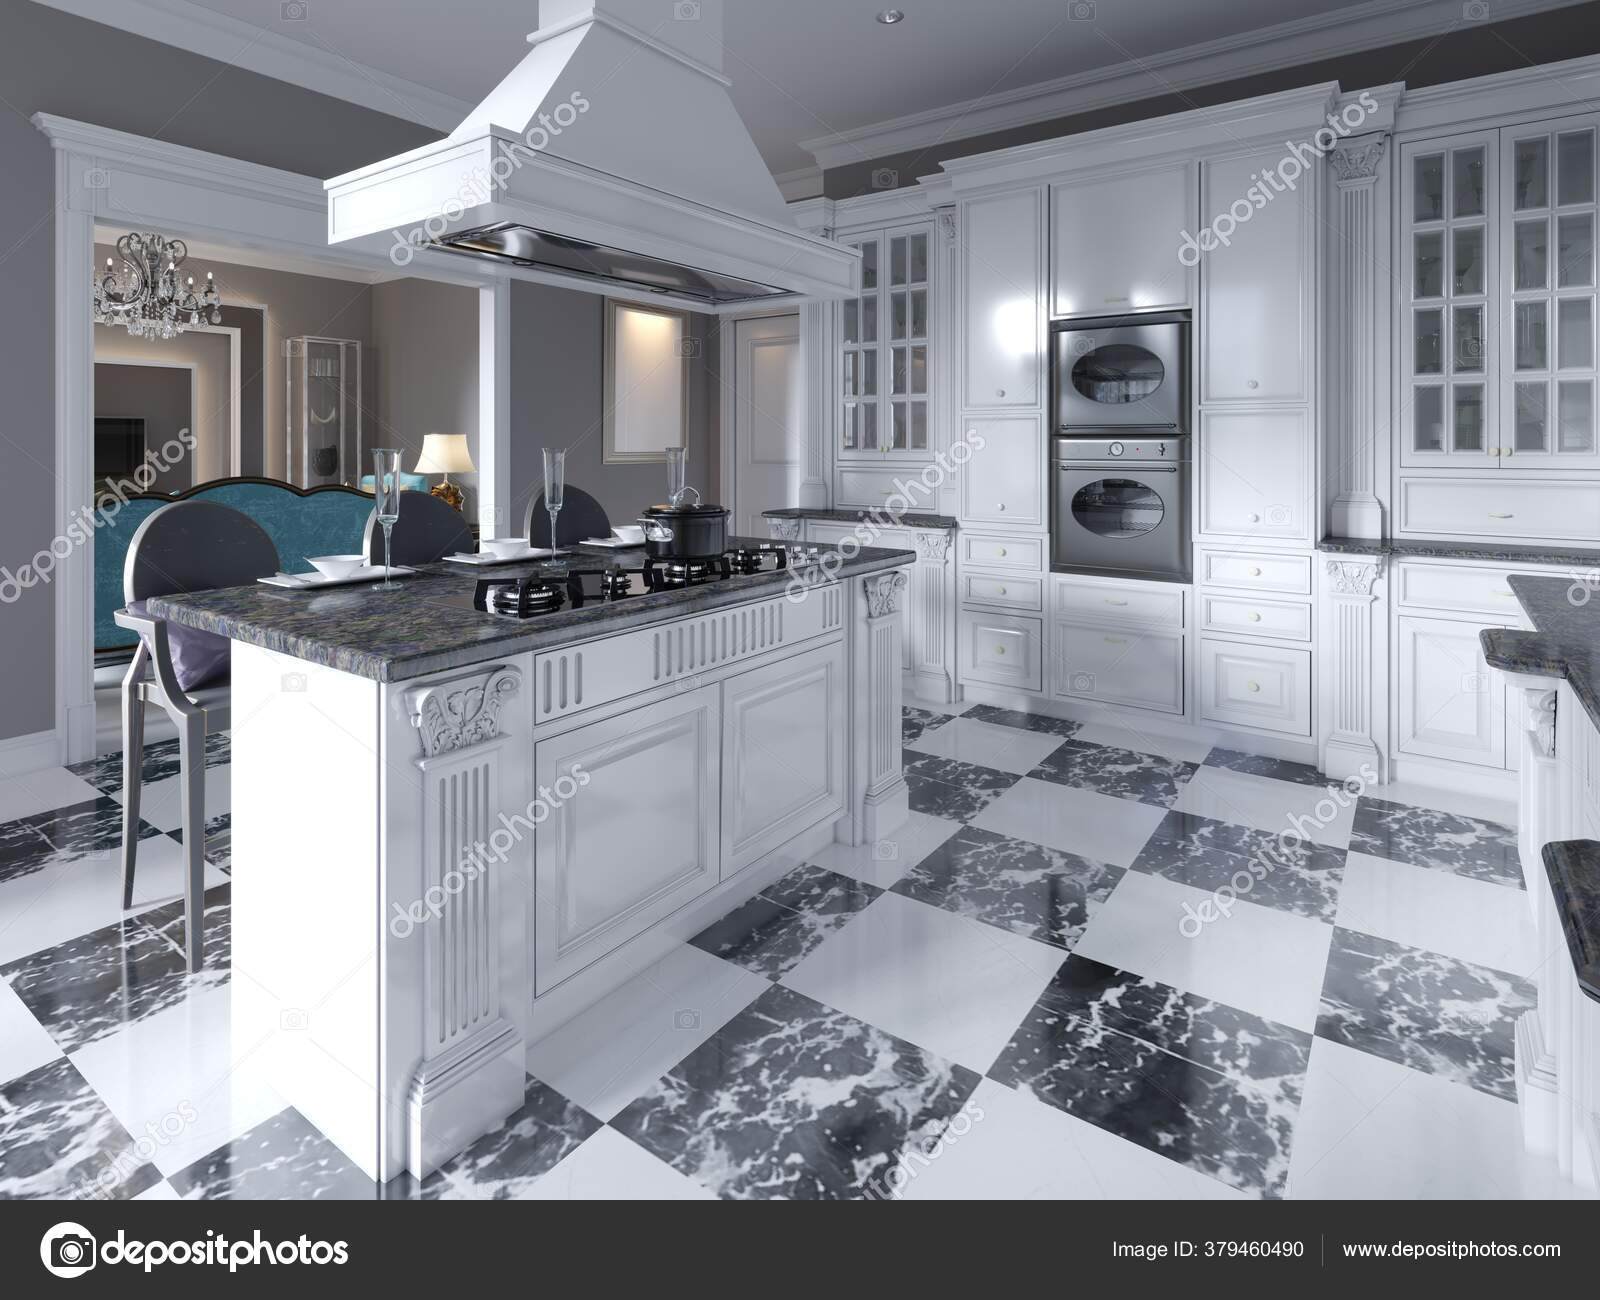 Modern Art Deco Style Kitchen Trendy Black White Furniture Chess Stock Photo C Kuprin33 379460490